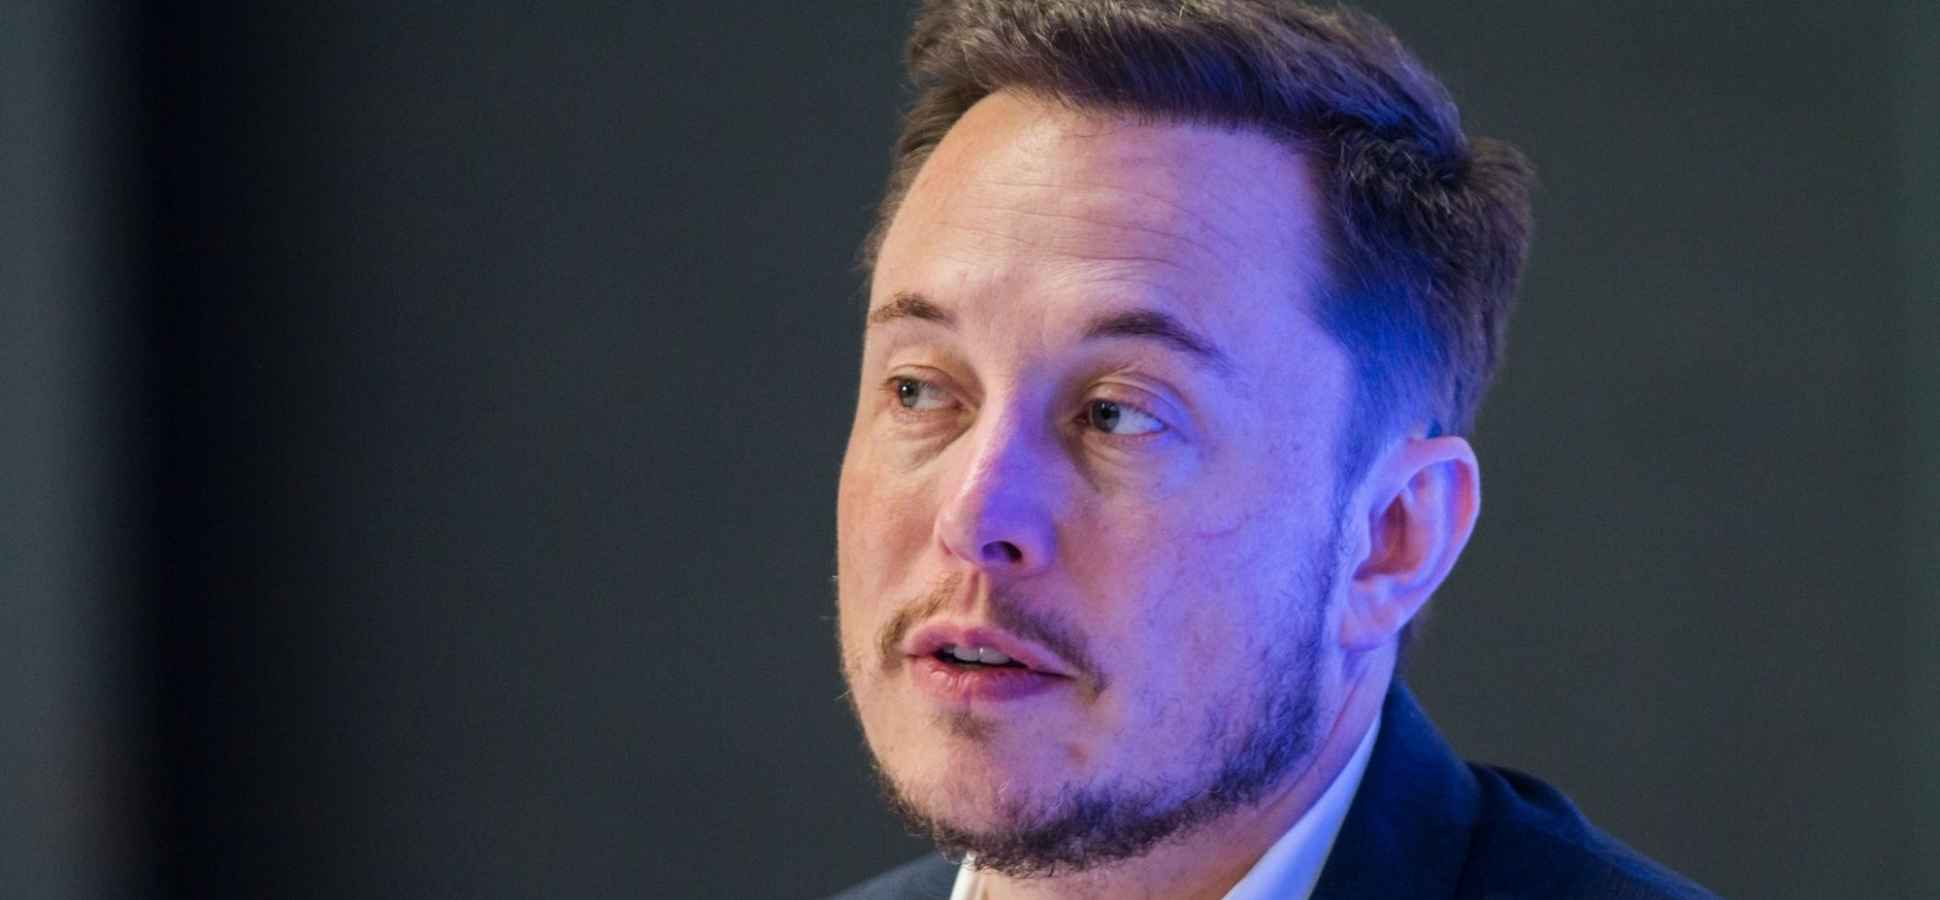 Elon Musk Says That in the Future, Governments Will Pay You for Being Alive